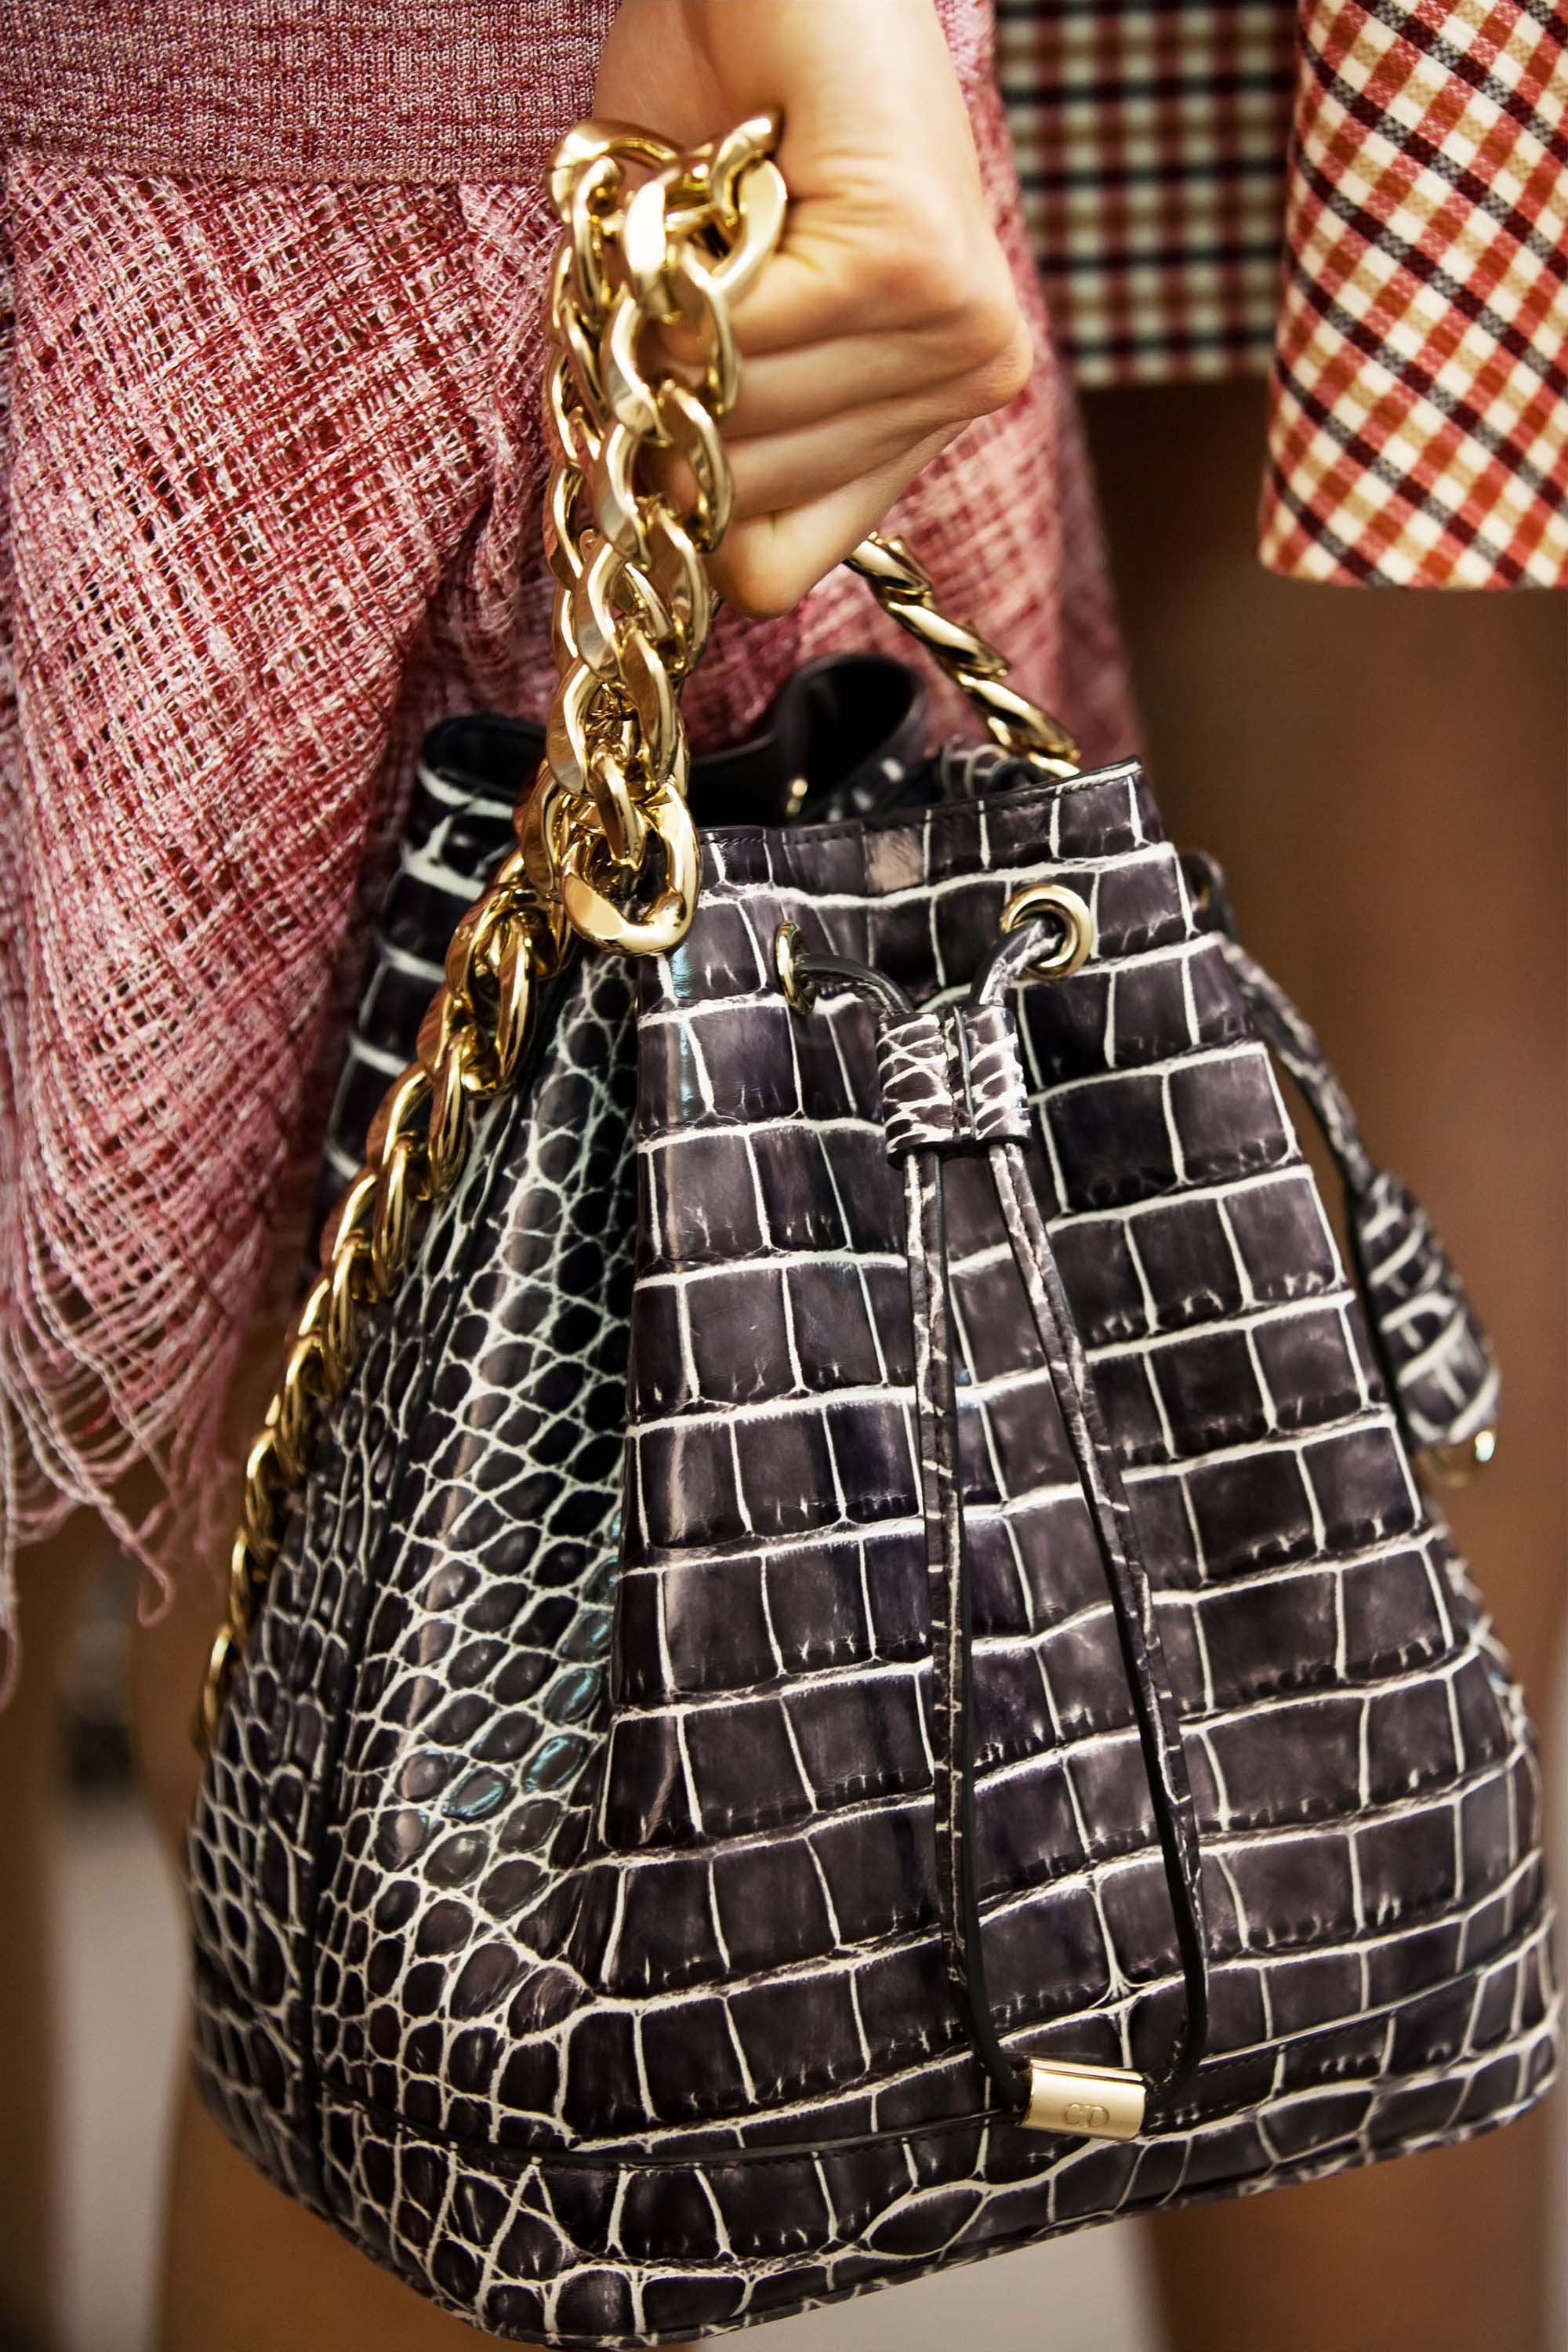 Dior Cruise 2016 Runway Bag Collection Featuring Chain Bucket Bag ... 327a62589c149